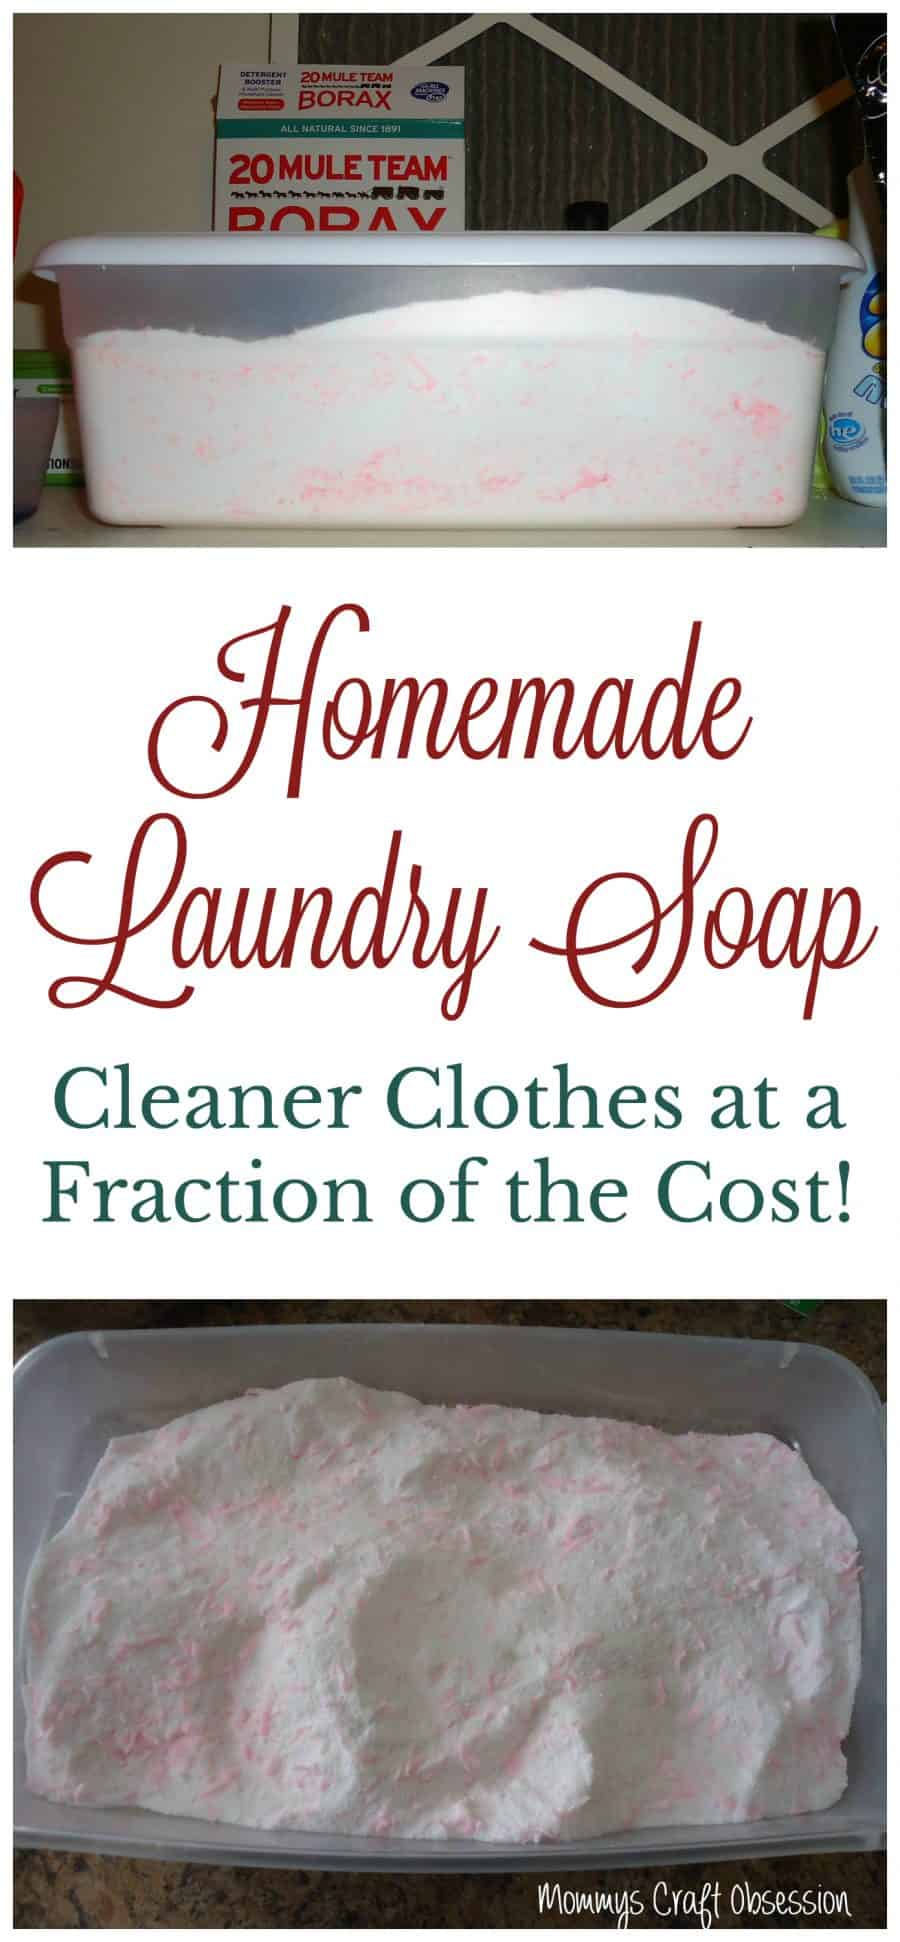 Homemade Laundry Soap Recipe